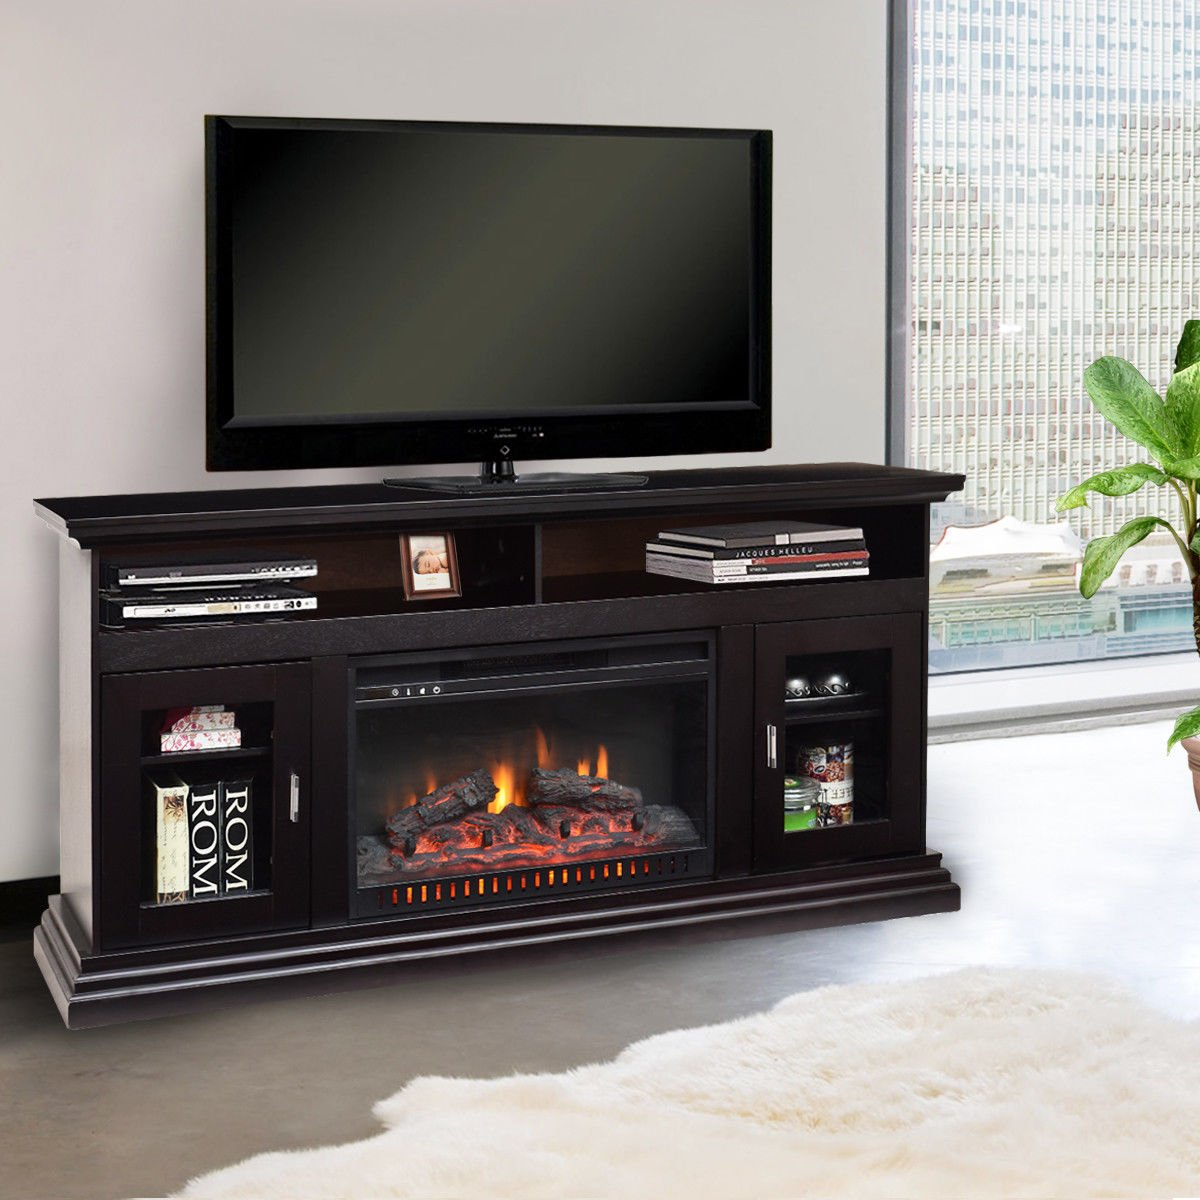 """Tangkula Fireplace TV Stand 62"""" Home Living Room Wooden Media TV Stand Fireplace with glass doors"""